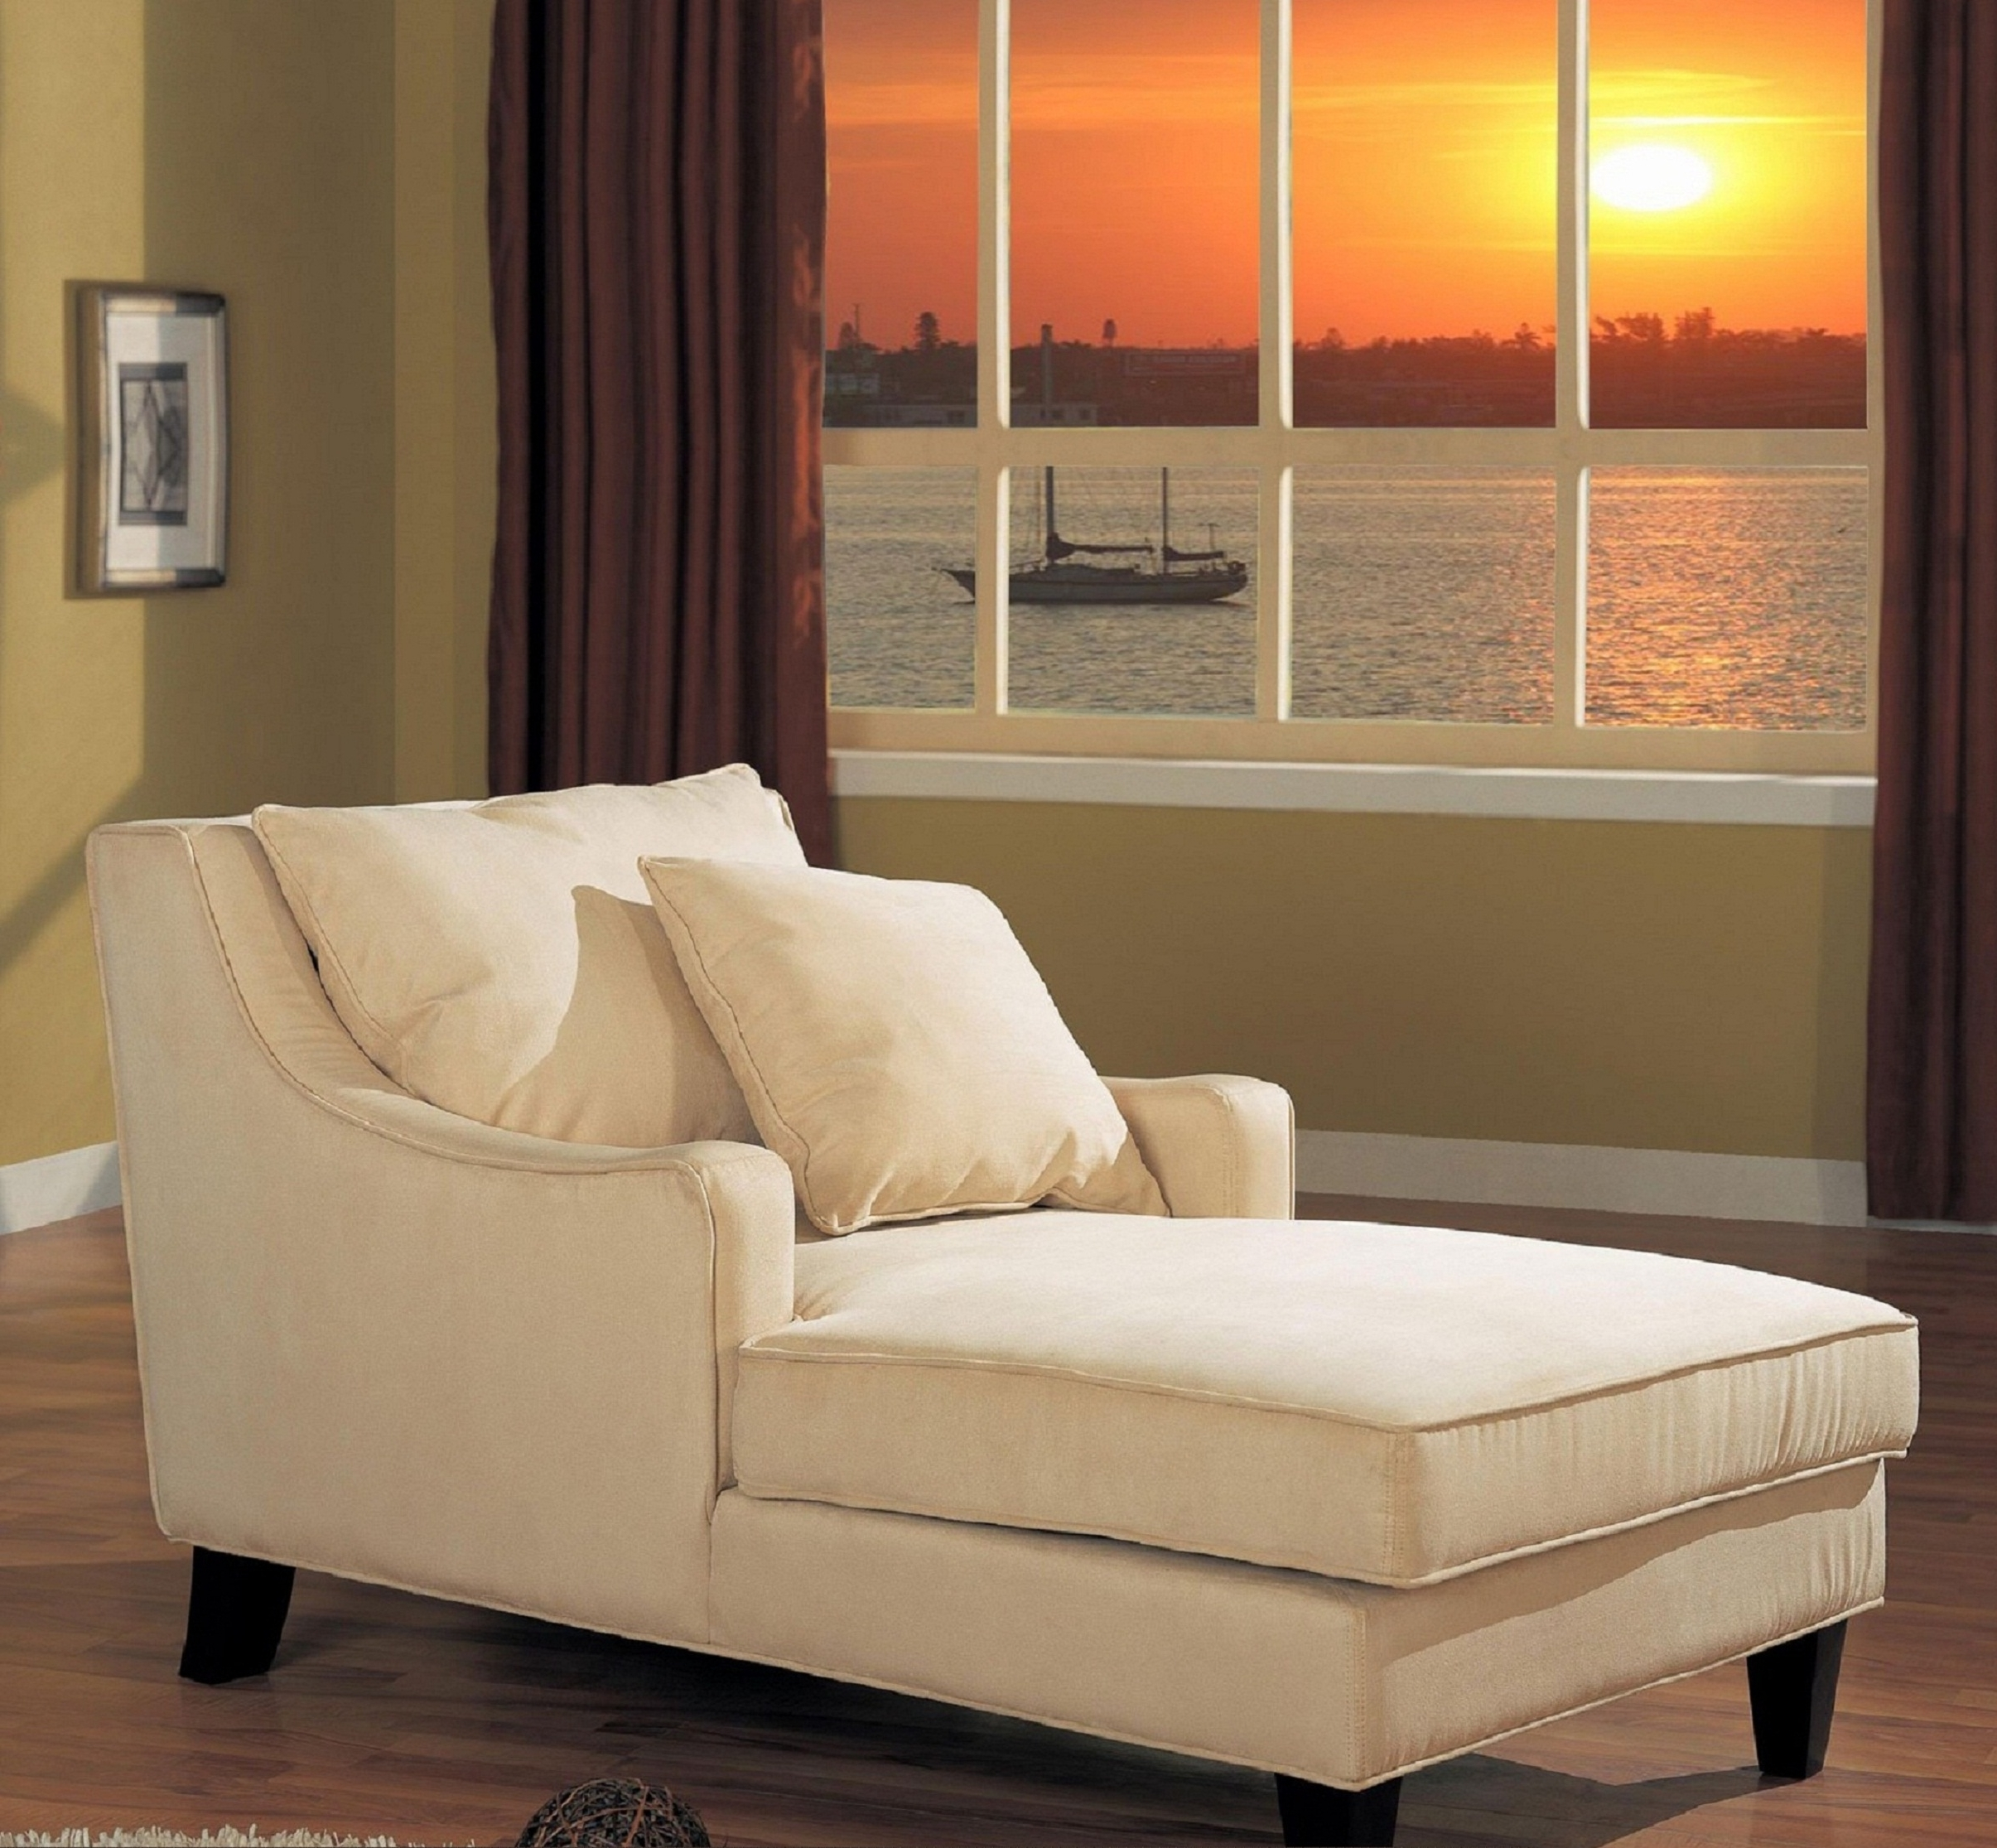 Wide Beige Upholstered Chaise Lounge With Arm And Cushion Having For Current Wide Chaise Lounges (View 13 of 15)